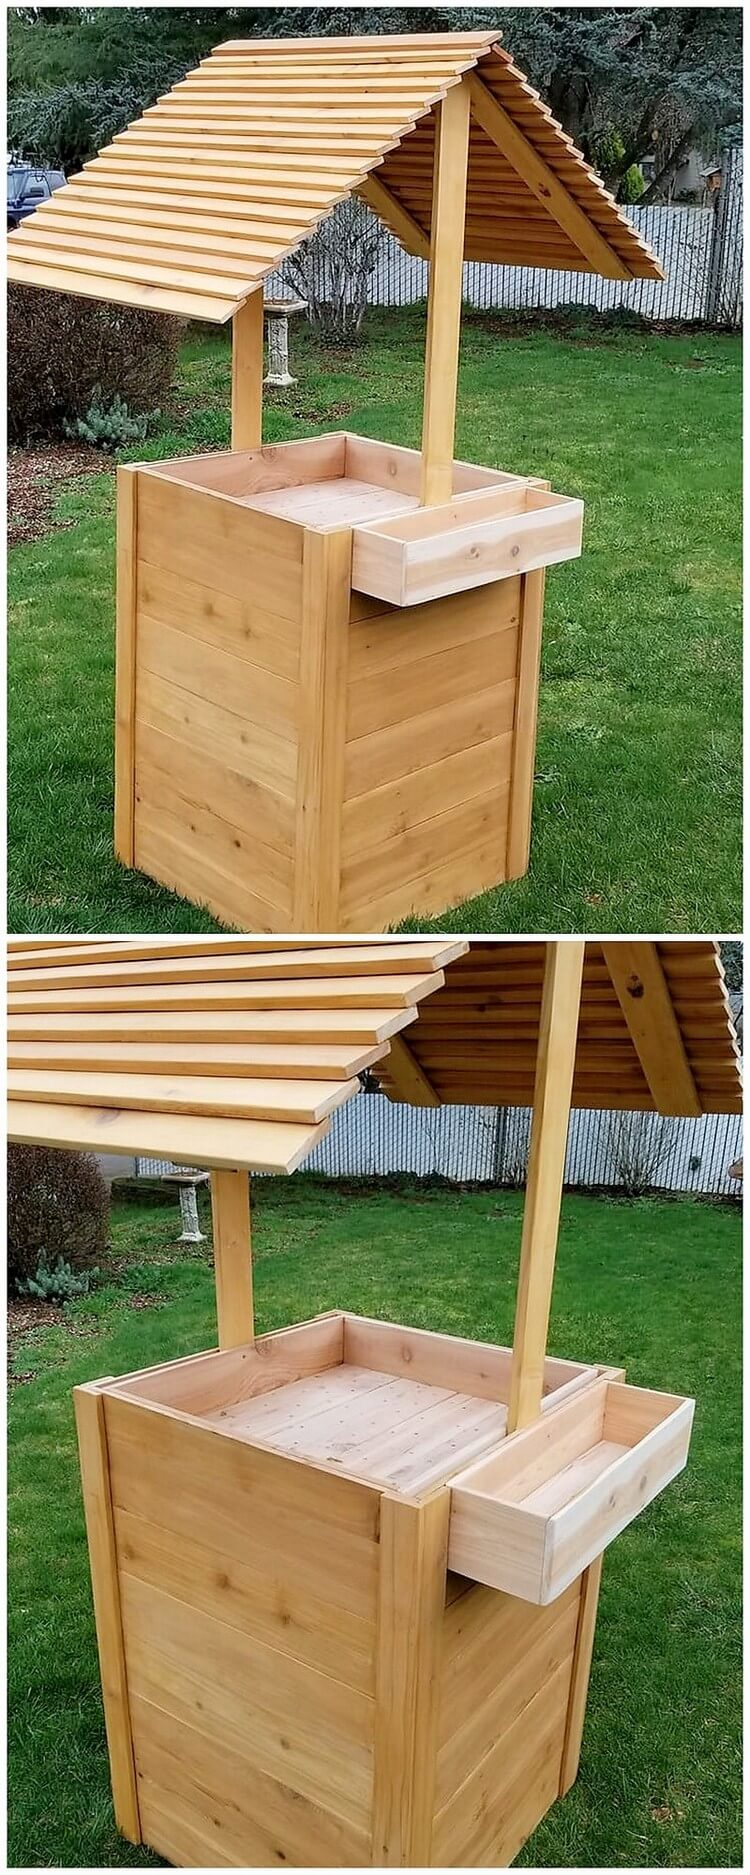 Magnificent Ideas To Recycle Used Wooden Pallets Pallet